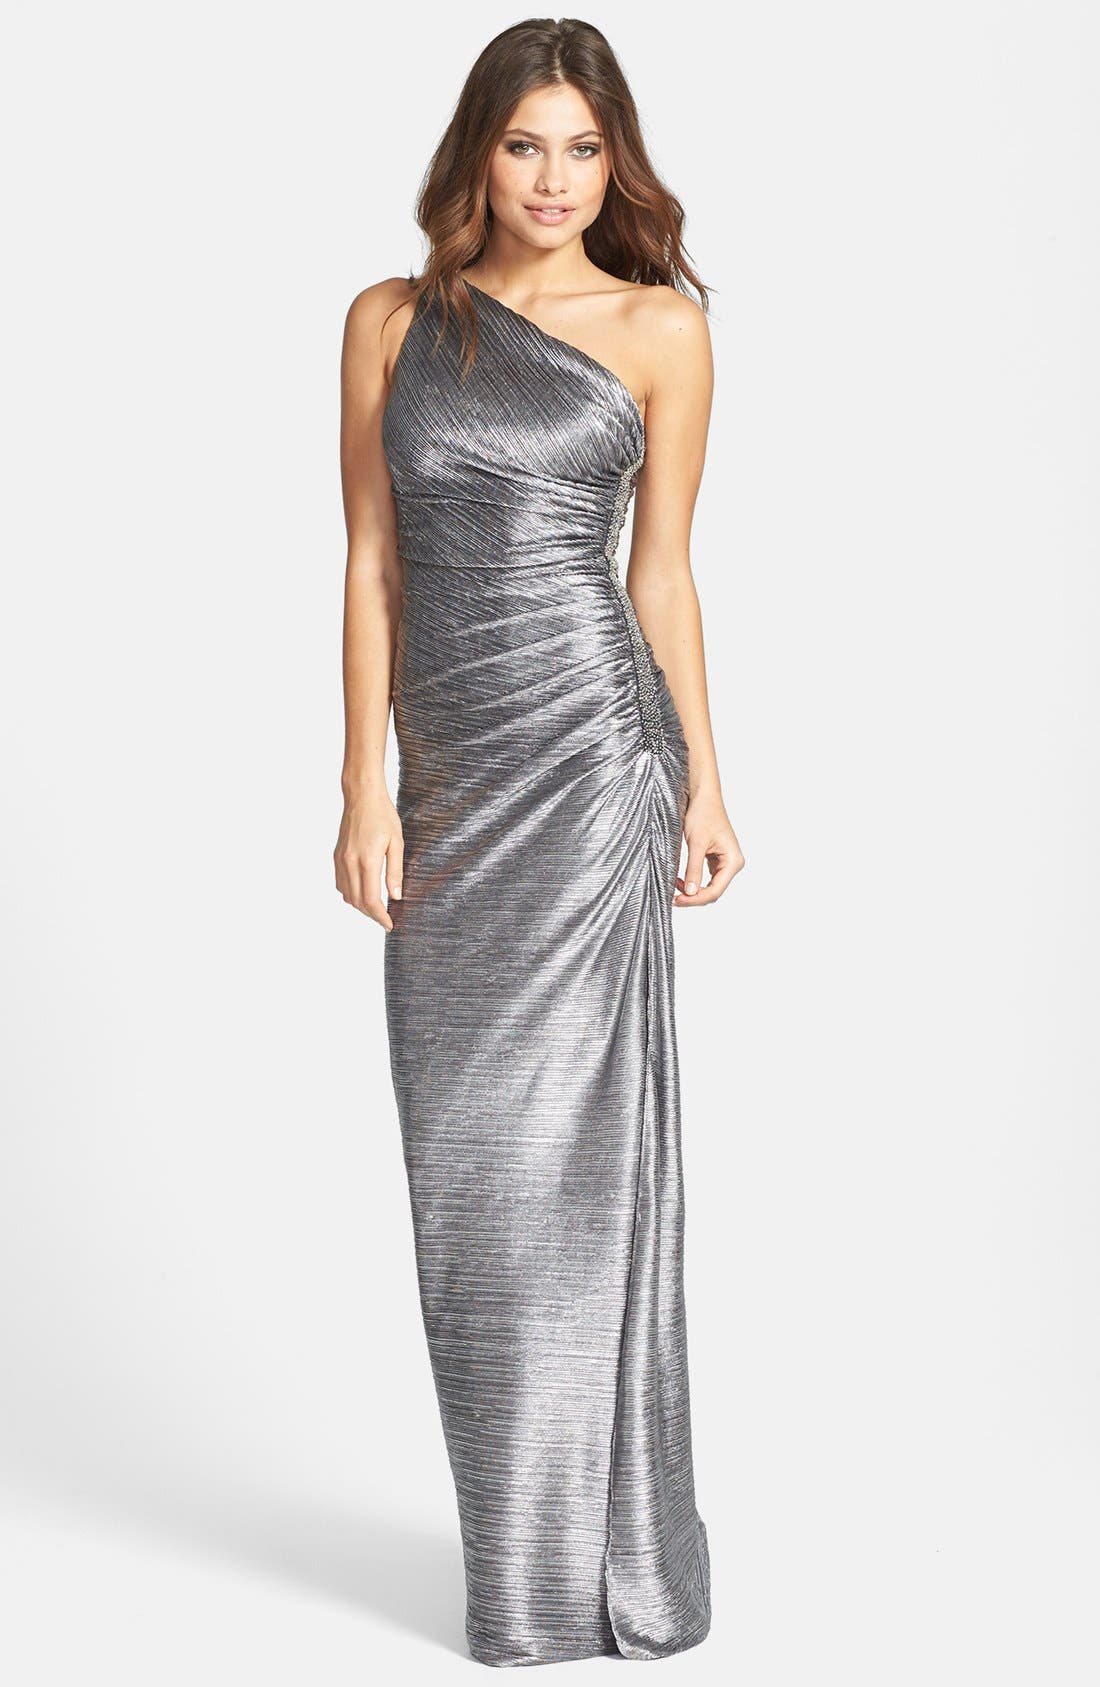 Alternate Image 1 Selected - Laundry by Shelli Segal Embellished Metallic Foil One-Shoulder Gown